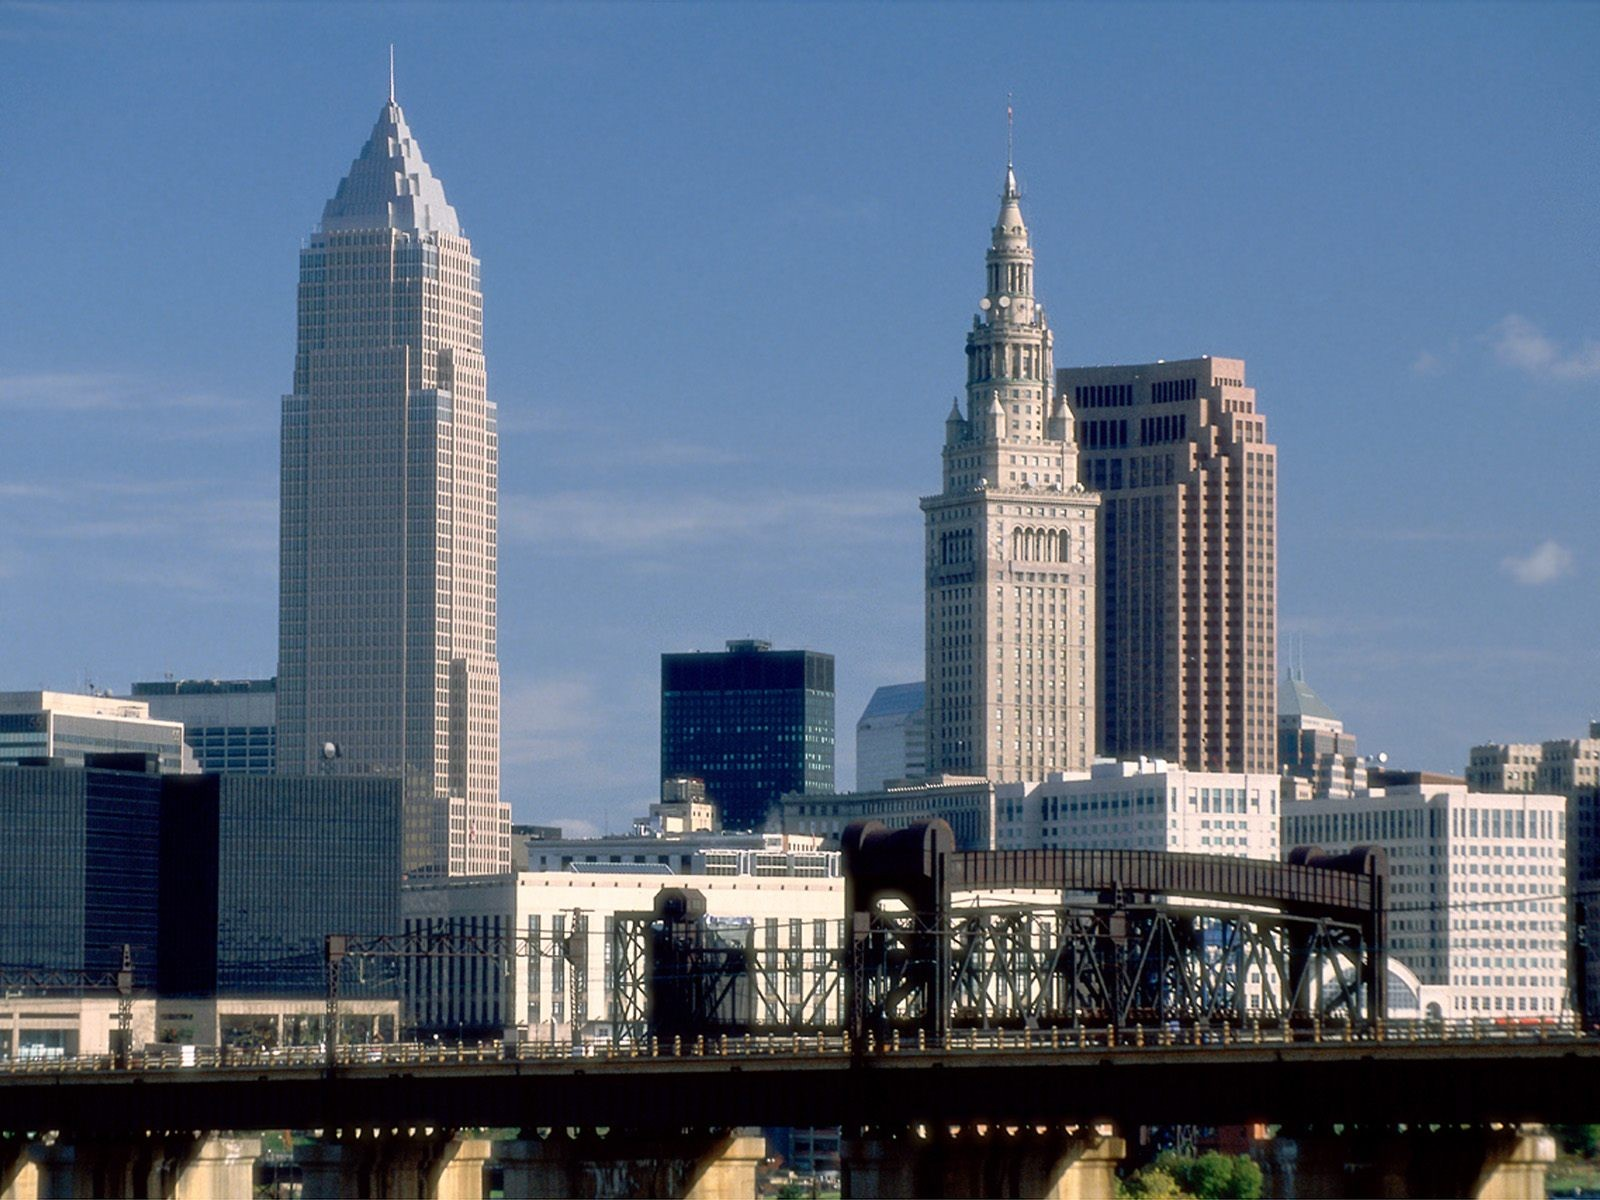 downtown cleveland ohio wallpaper - photo #13